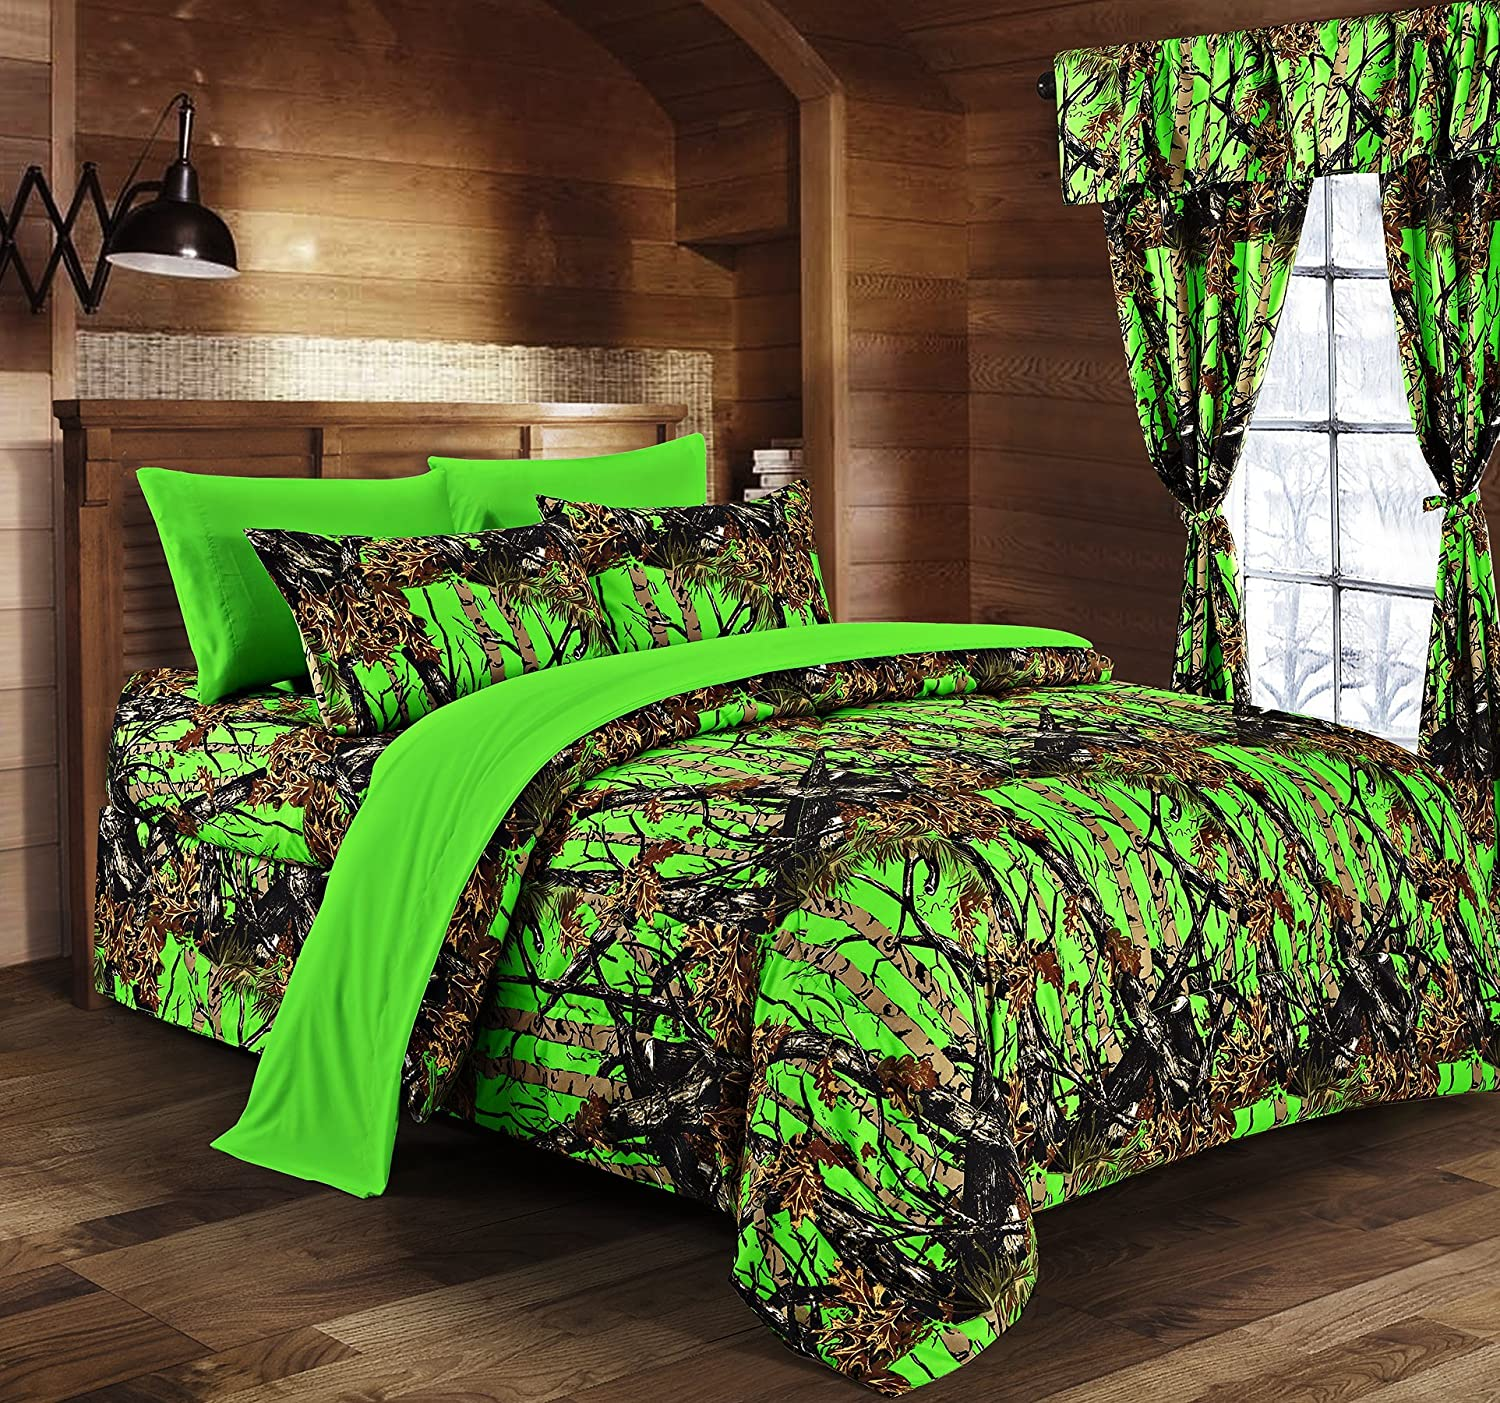 Green Camouflage Queen 8pc Premium Luxury Comforter